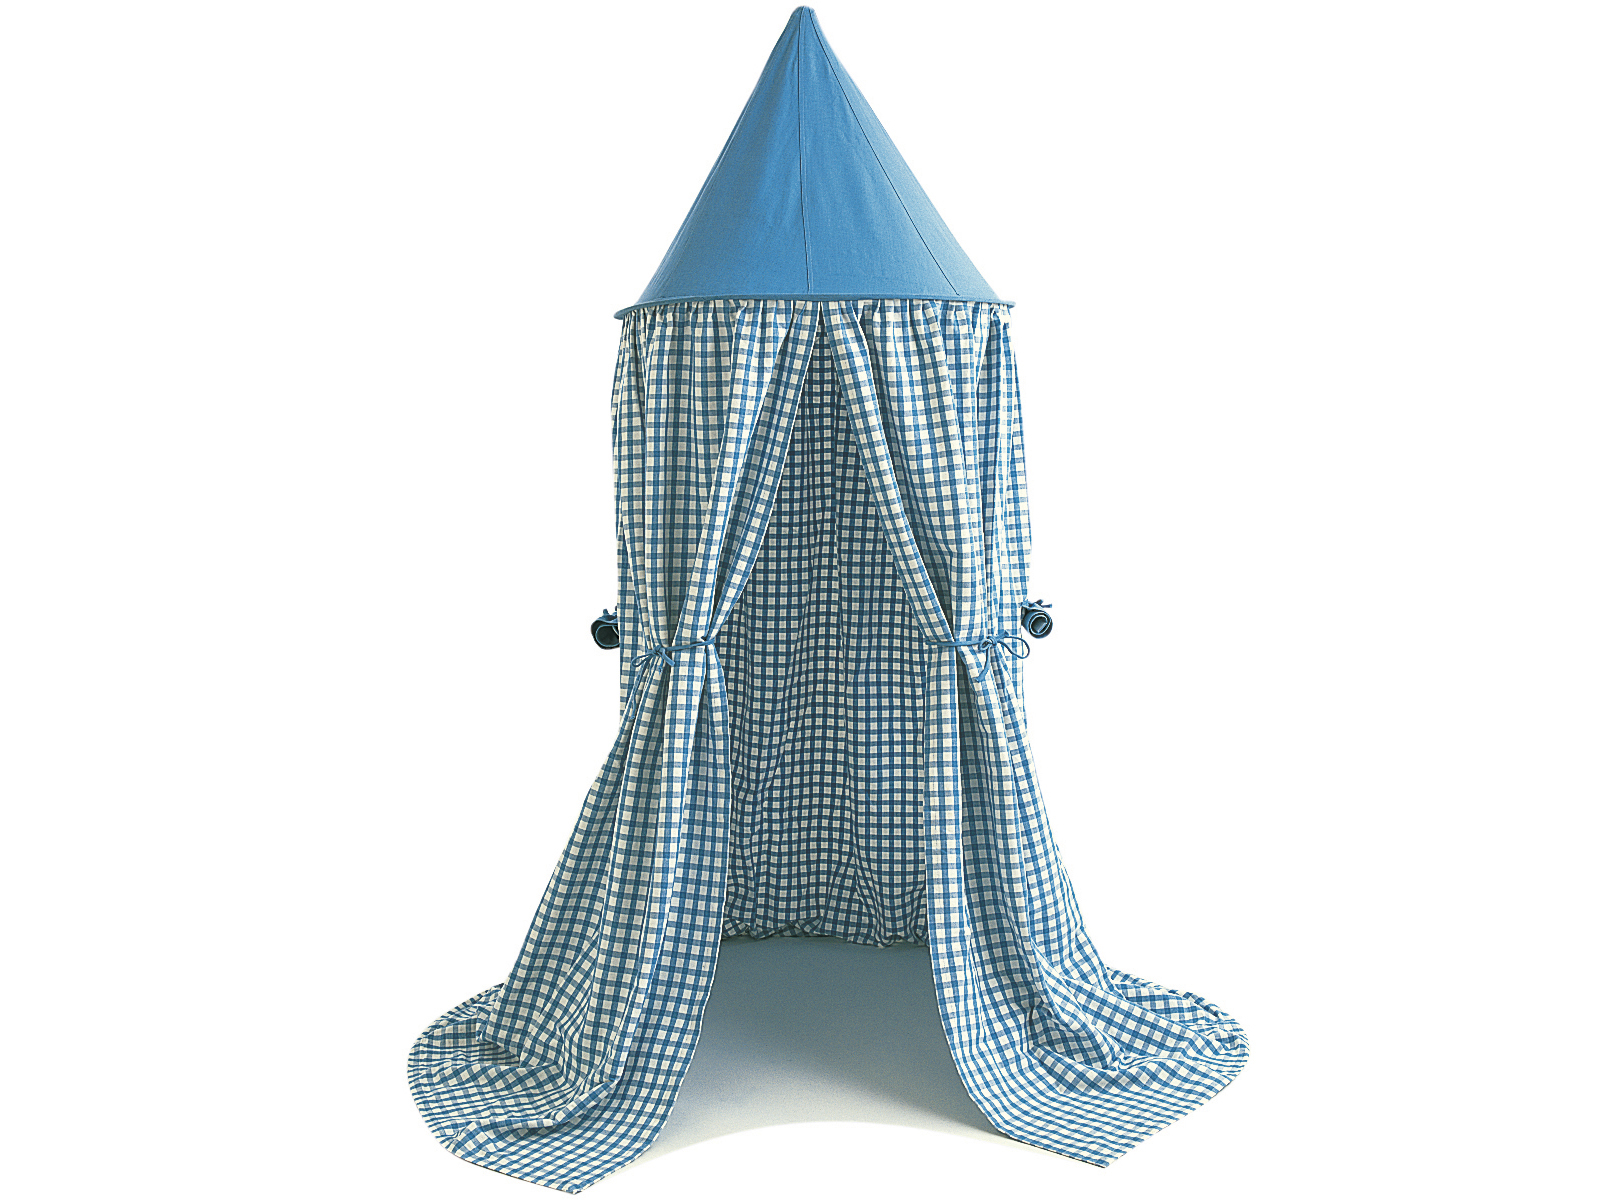 ... Win Green Handmade Cotton Hanging Tent - Playhouse of Dreams - 3 ...  sc 1 st  Playhouse of Dreams & Win Green Handmade Cotton Hanging Tent - Buy Online - Playhouse of ...